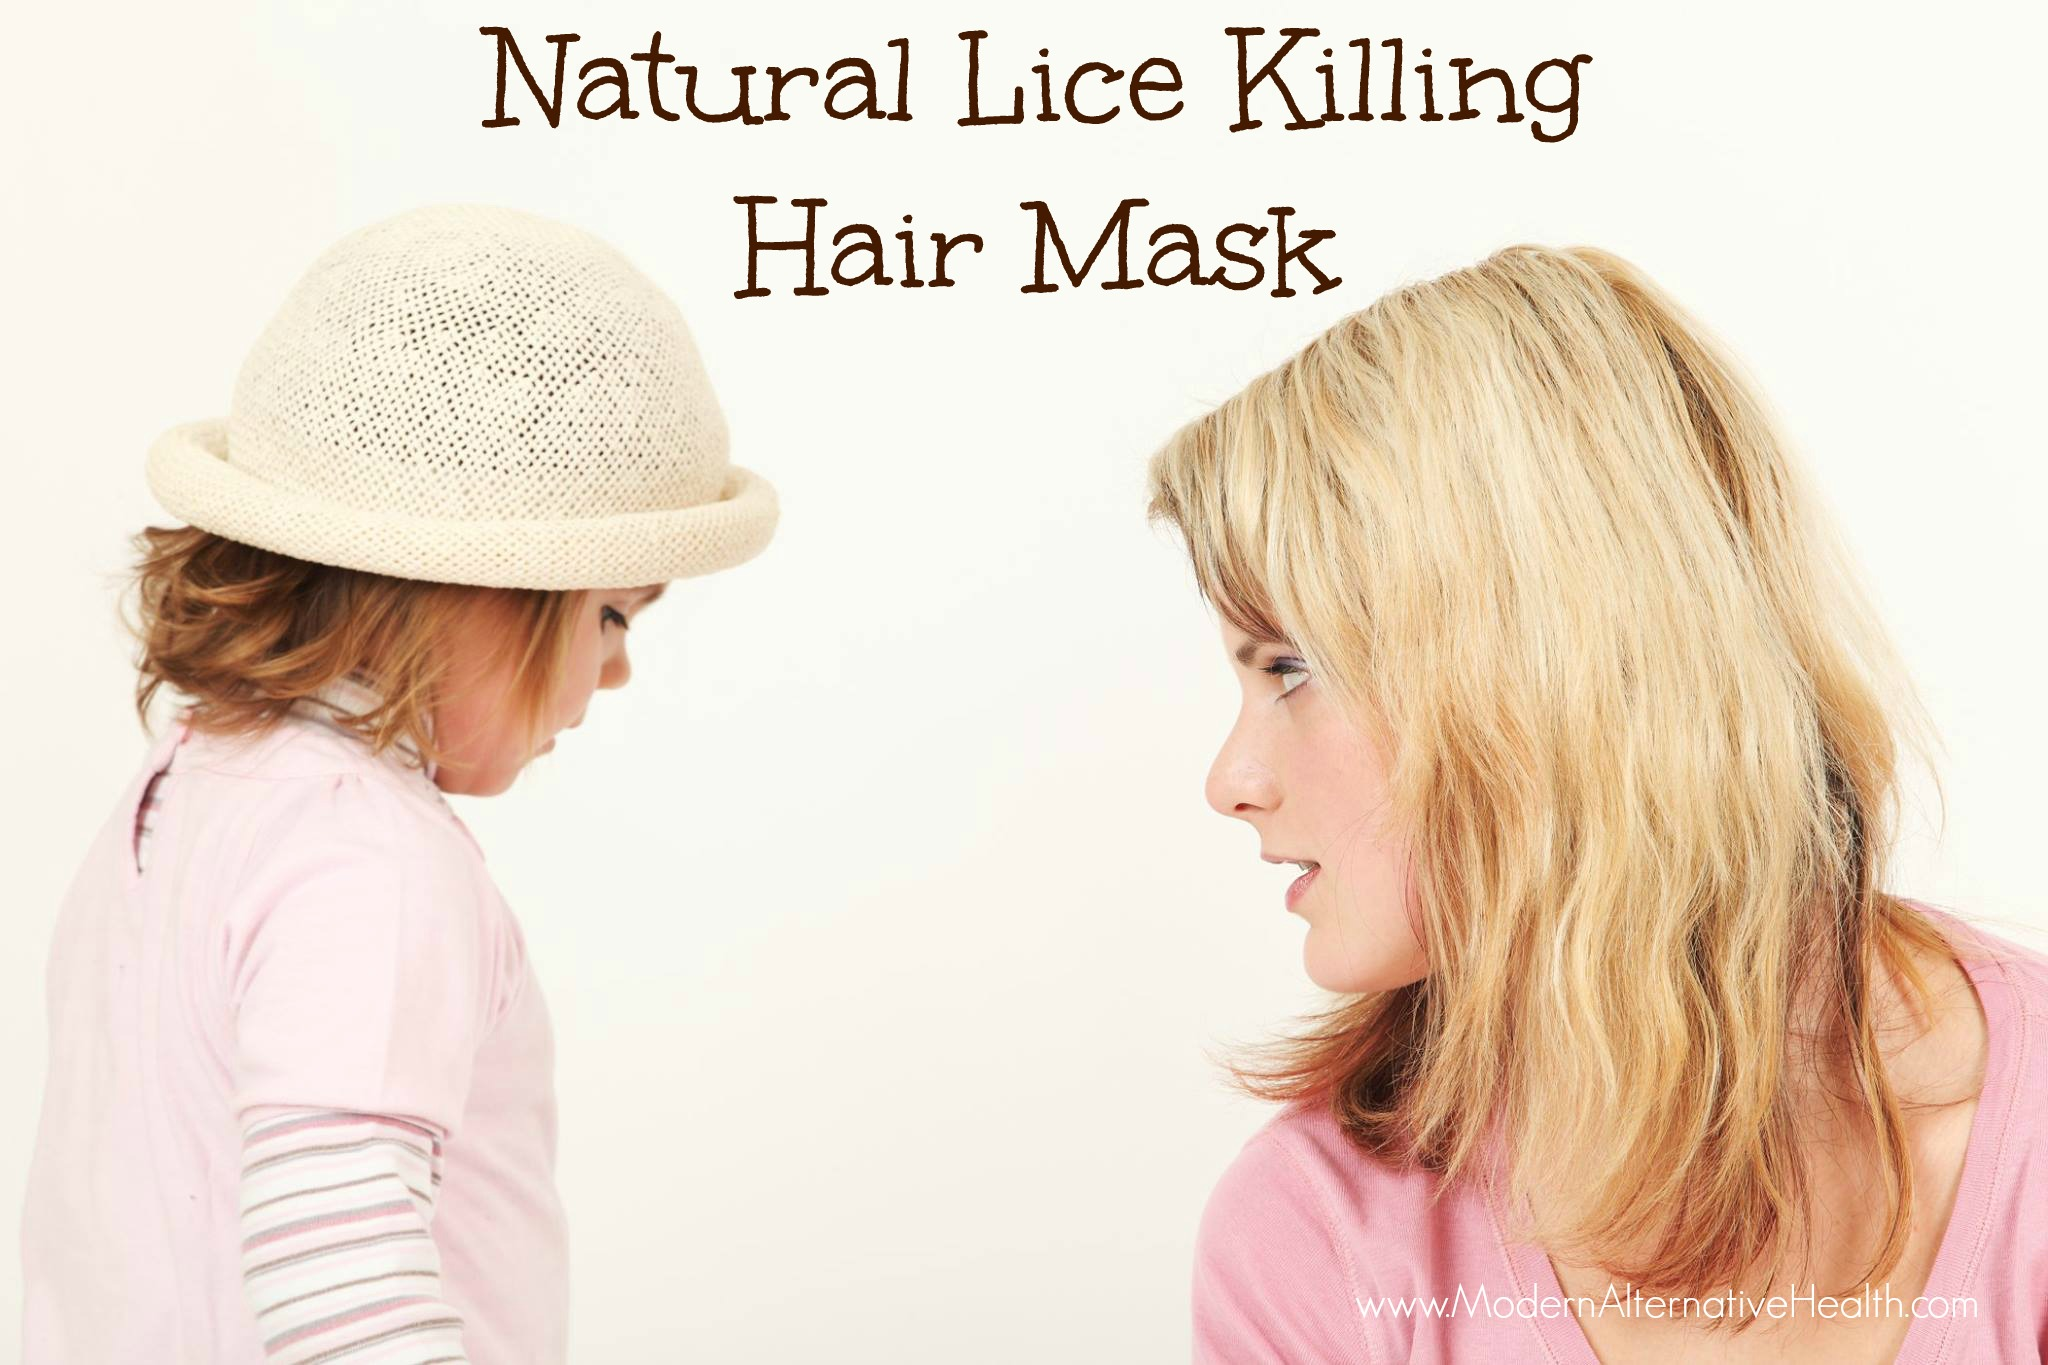 Natural Lice Killing Hair Mask